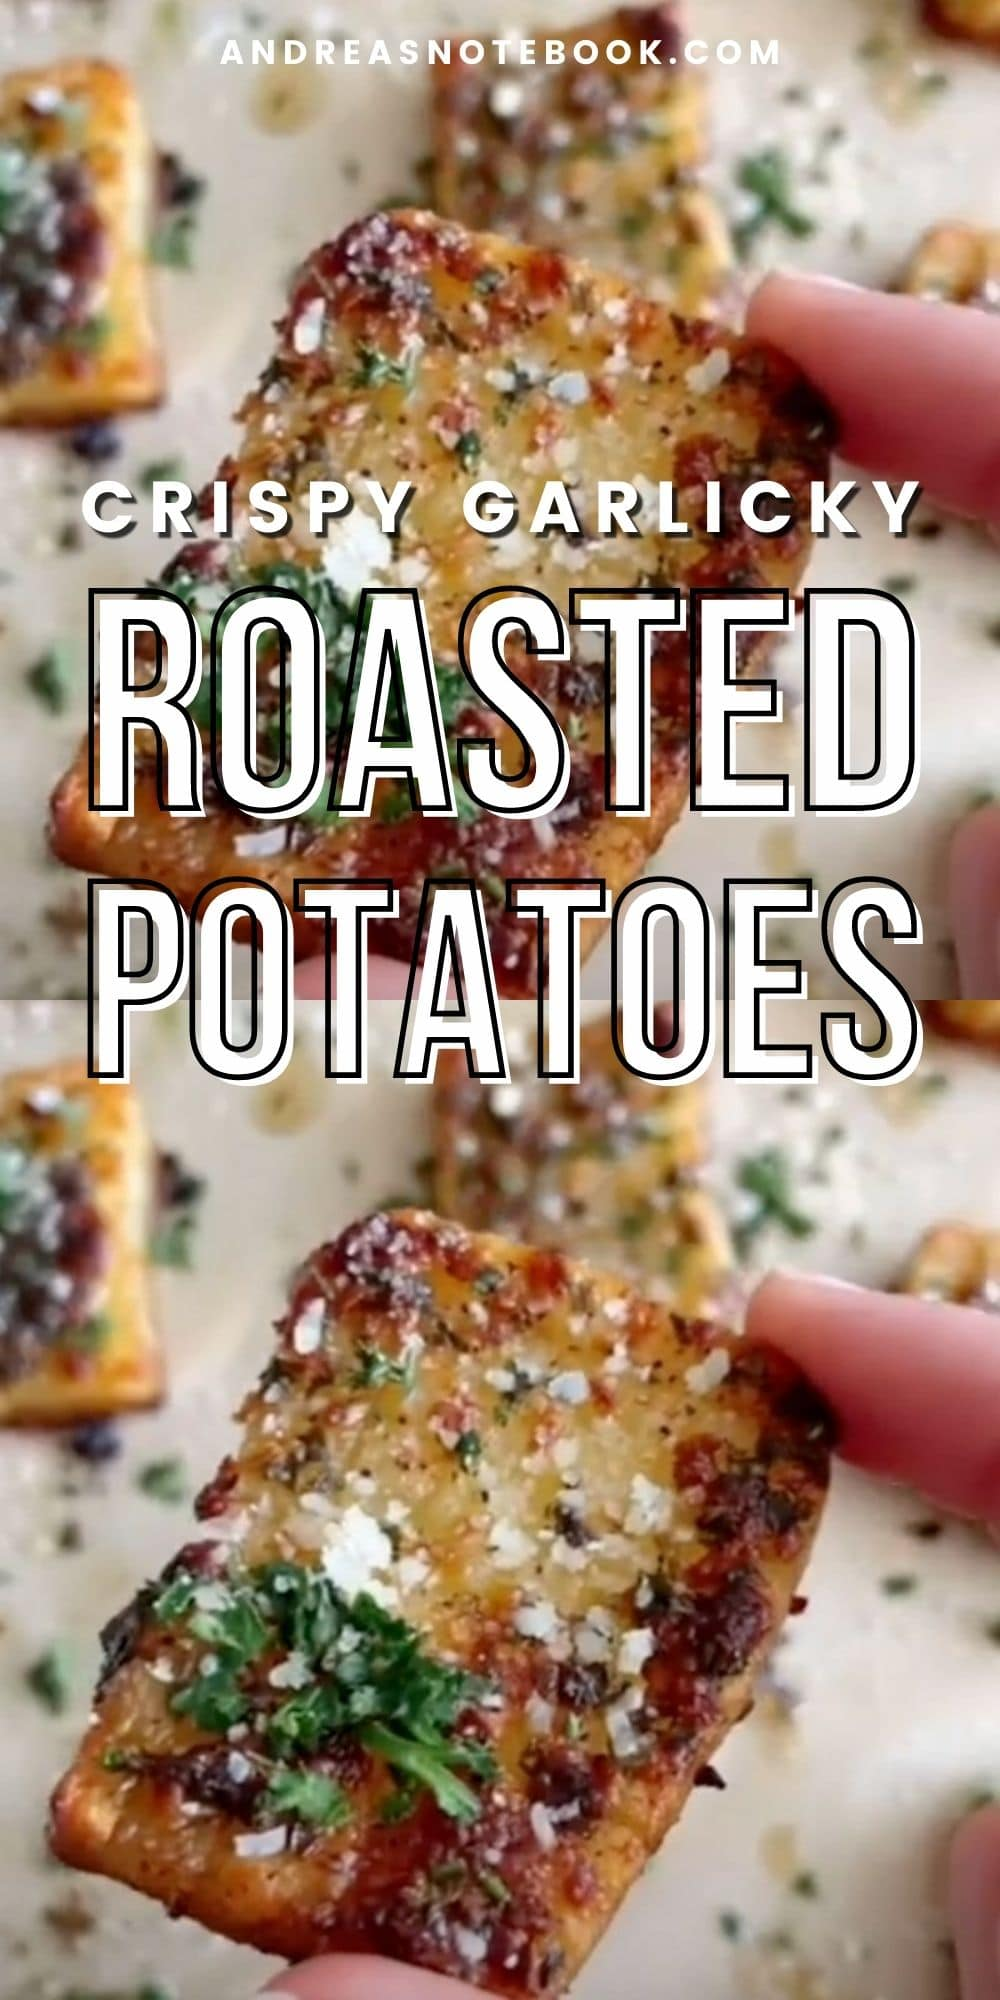 TEXT: crispy garlicky roasted potatoes IMAGE: closeup of potato squares with buttery parmesan potato and parsley.